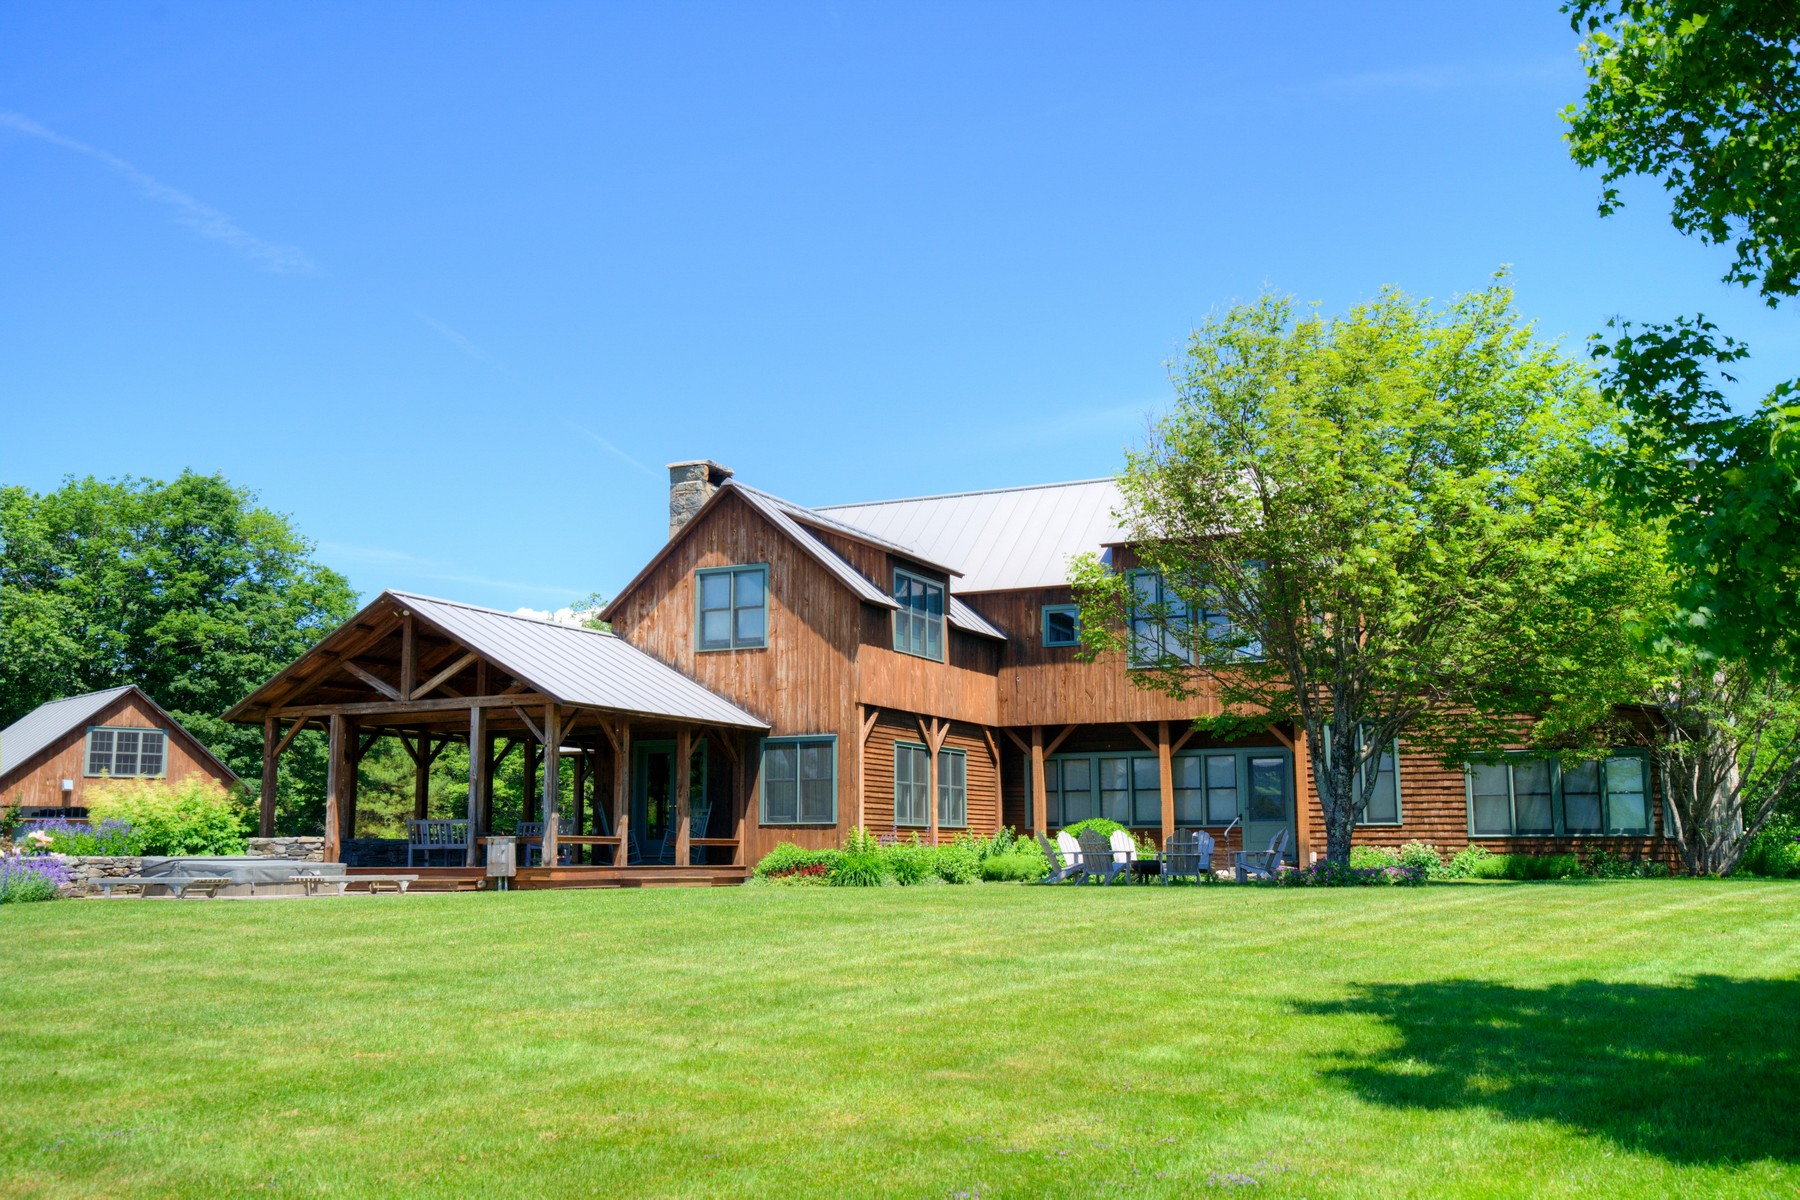 Single Family Homes for Sale at 122 Jaquith Road Weston, Vermont 05161 United States